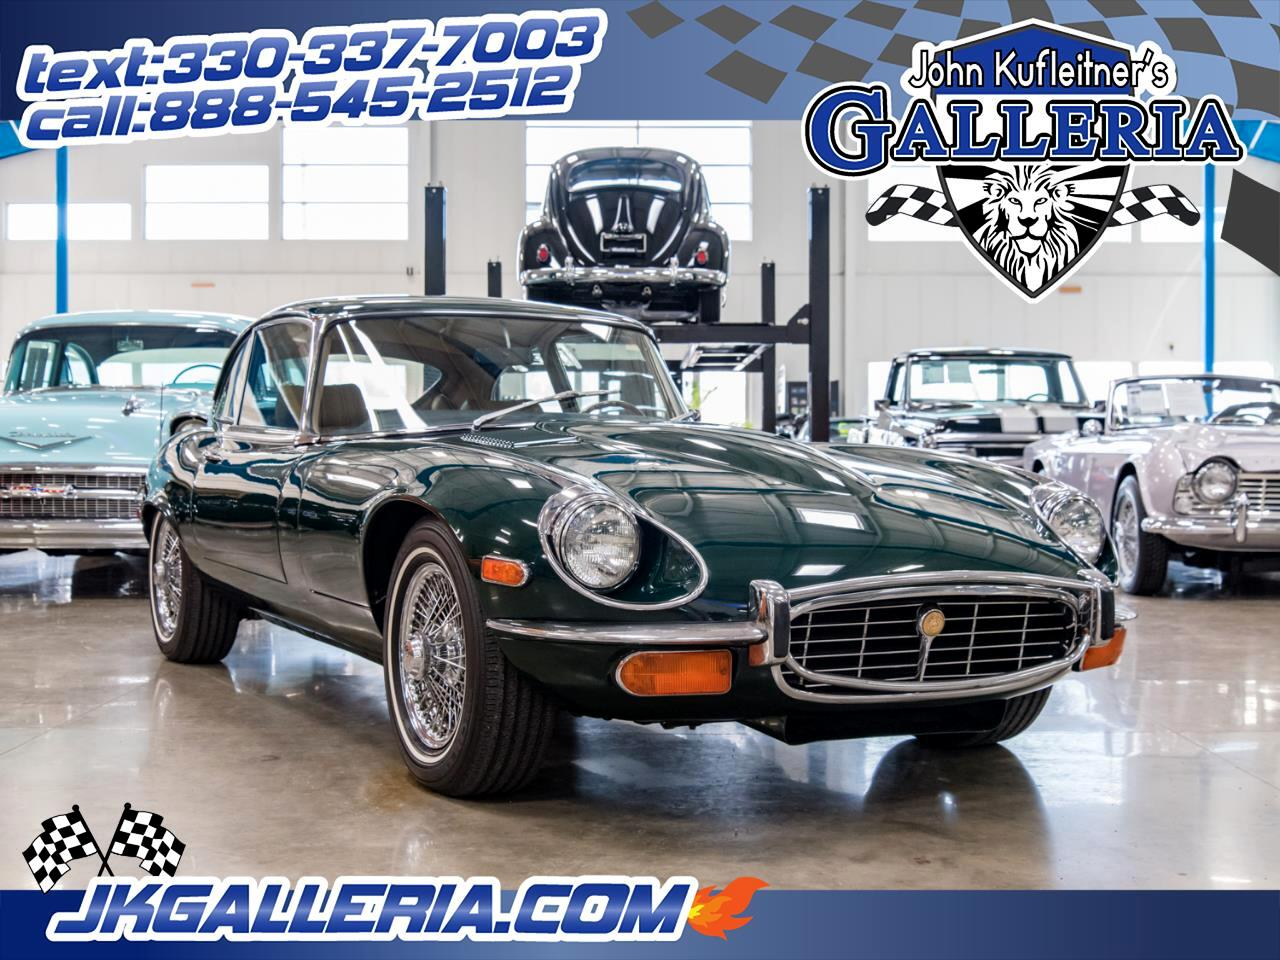 1972 Jaguar E-Type XK-E 2+2 Coupe